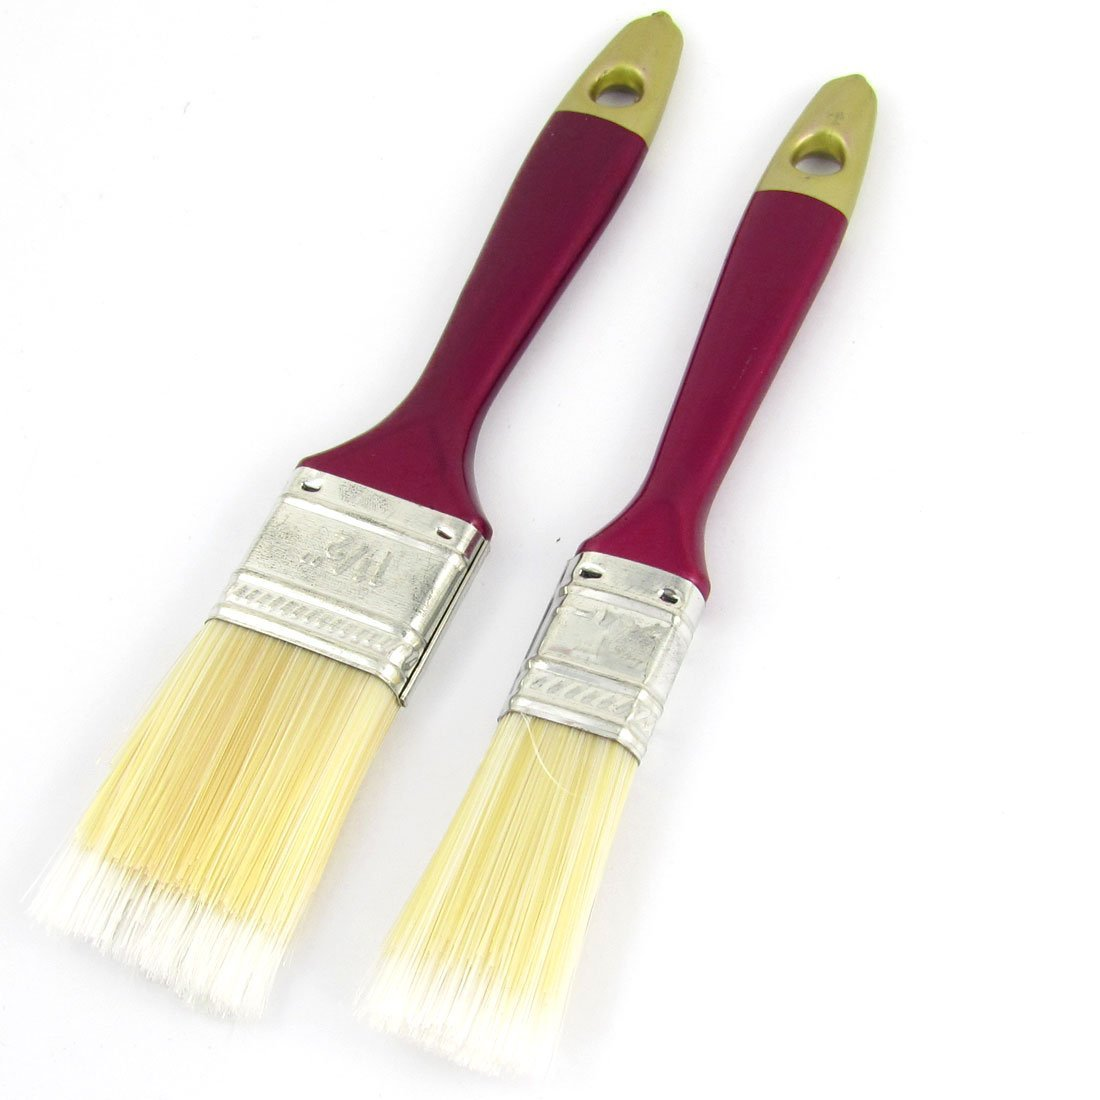 Uxcell Plastic Handle Nylon Bristle Oil Painting Brush, 2 in 1, Red Beige by uxcell